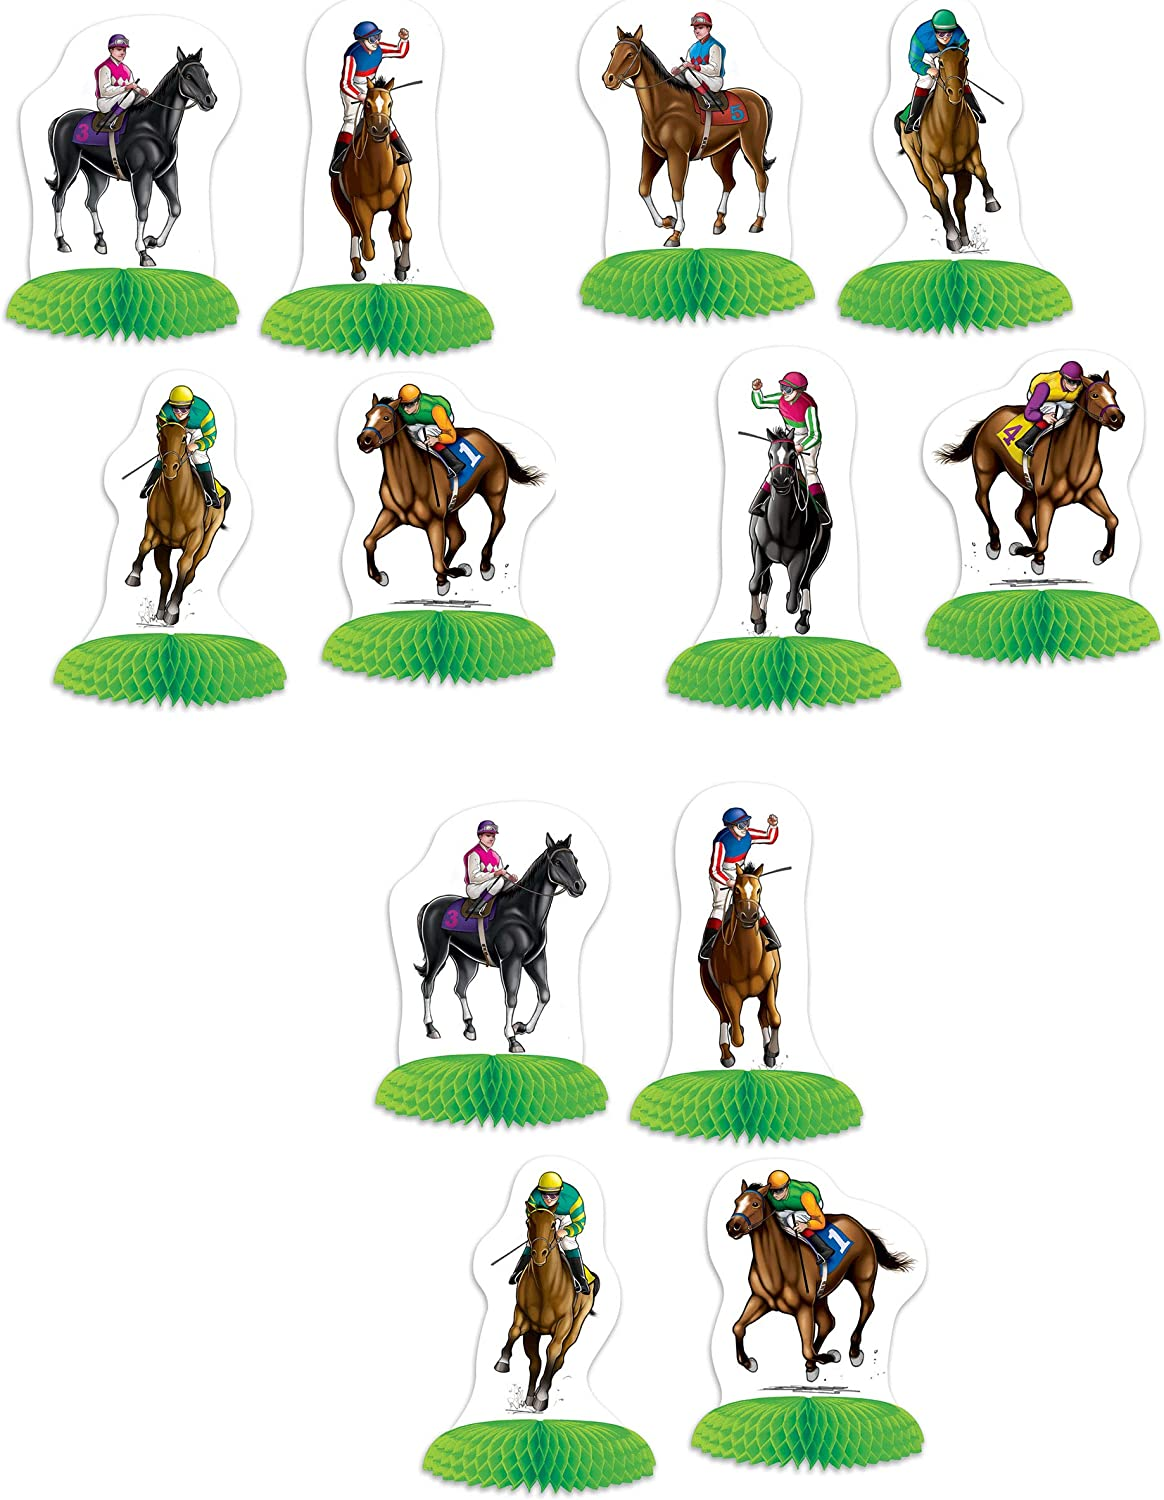 "Beistle Horse Racing Mini Centerpieces 12 Piece Derby Day Decorations Sports Party Supplies, 4.75"" - 5.5"", Green/White/Brown/Green/Yellow/Red/Blue"